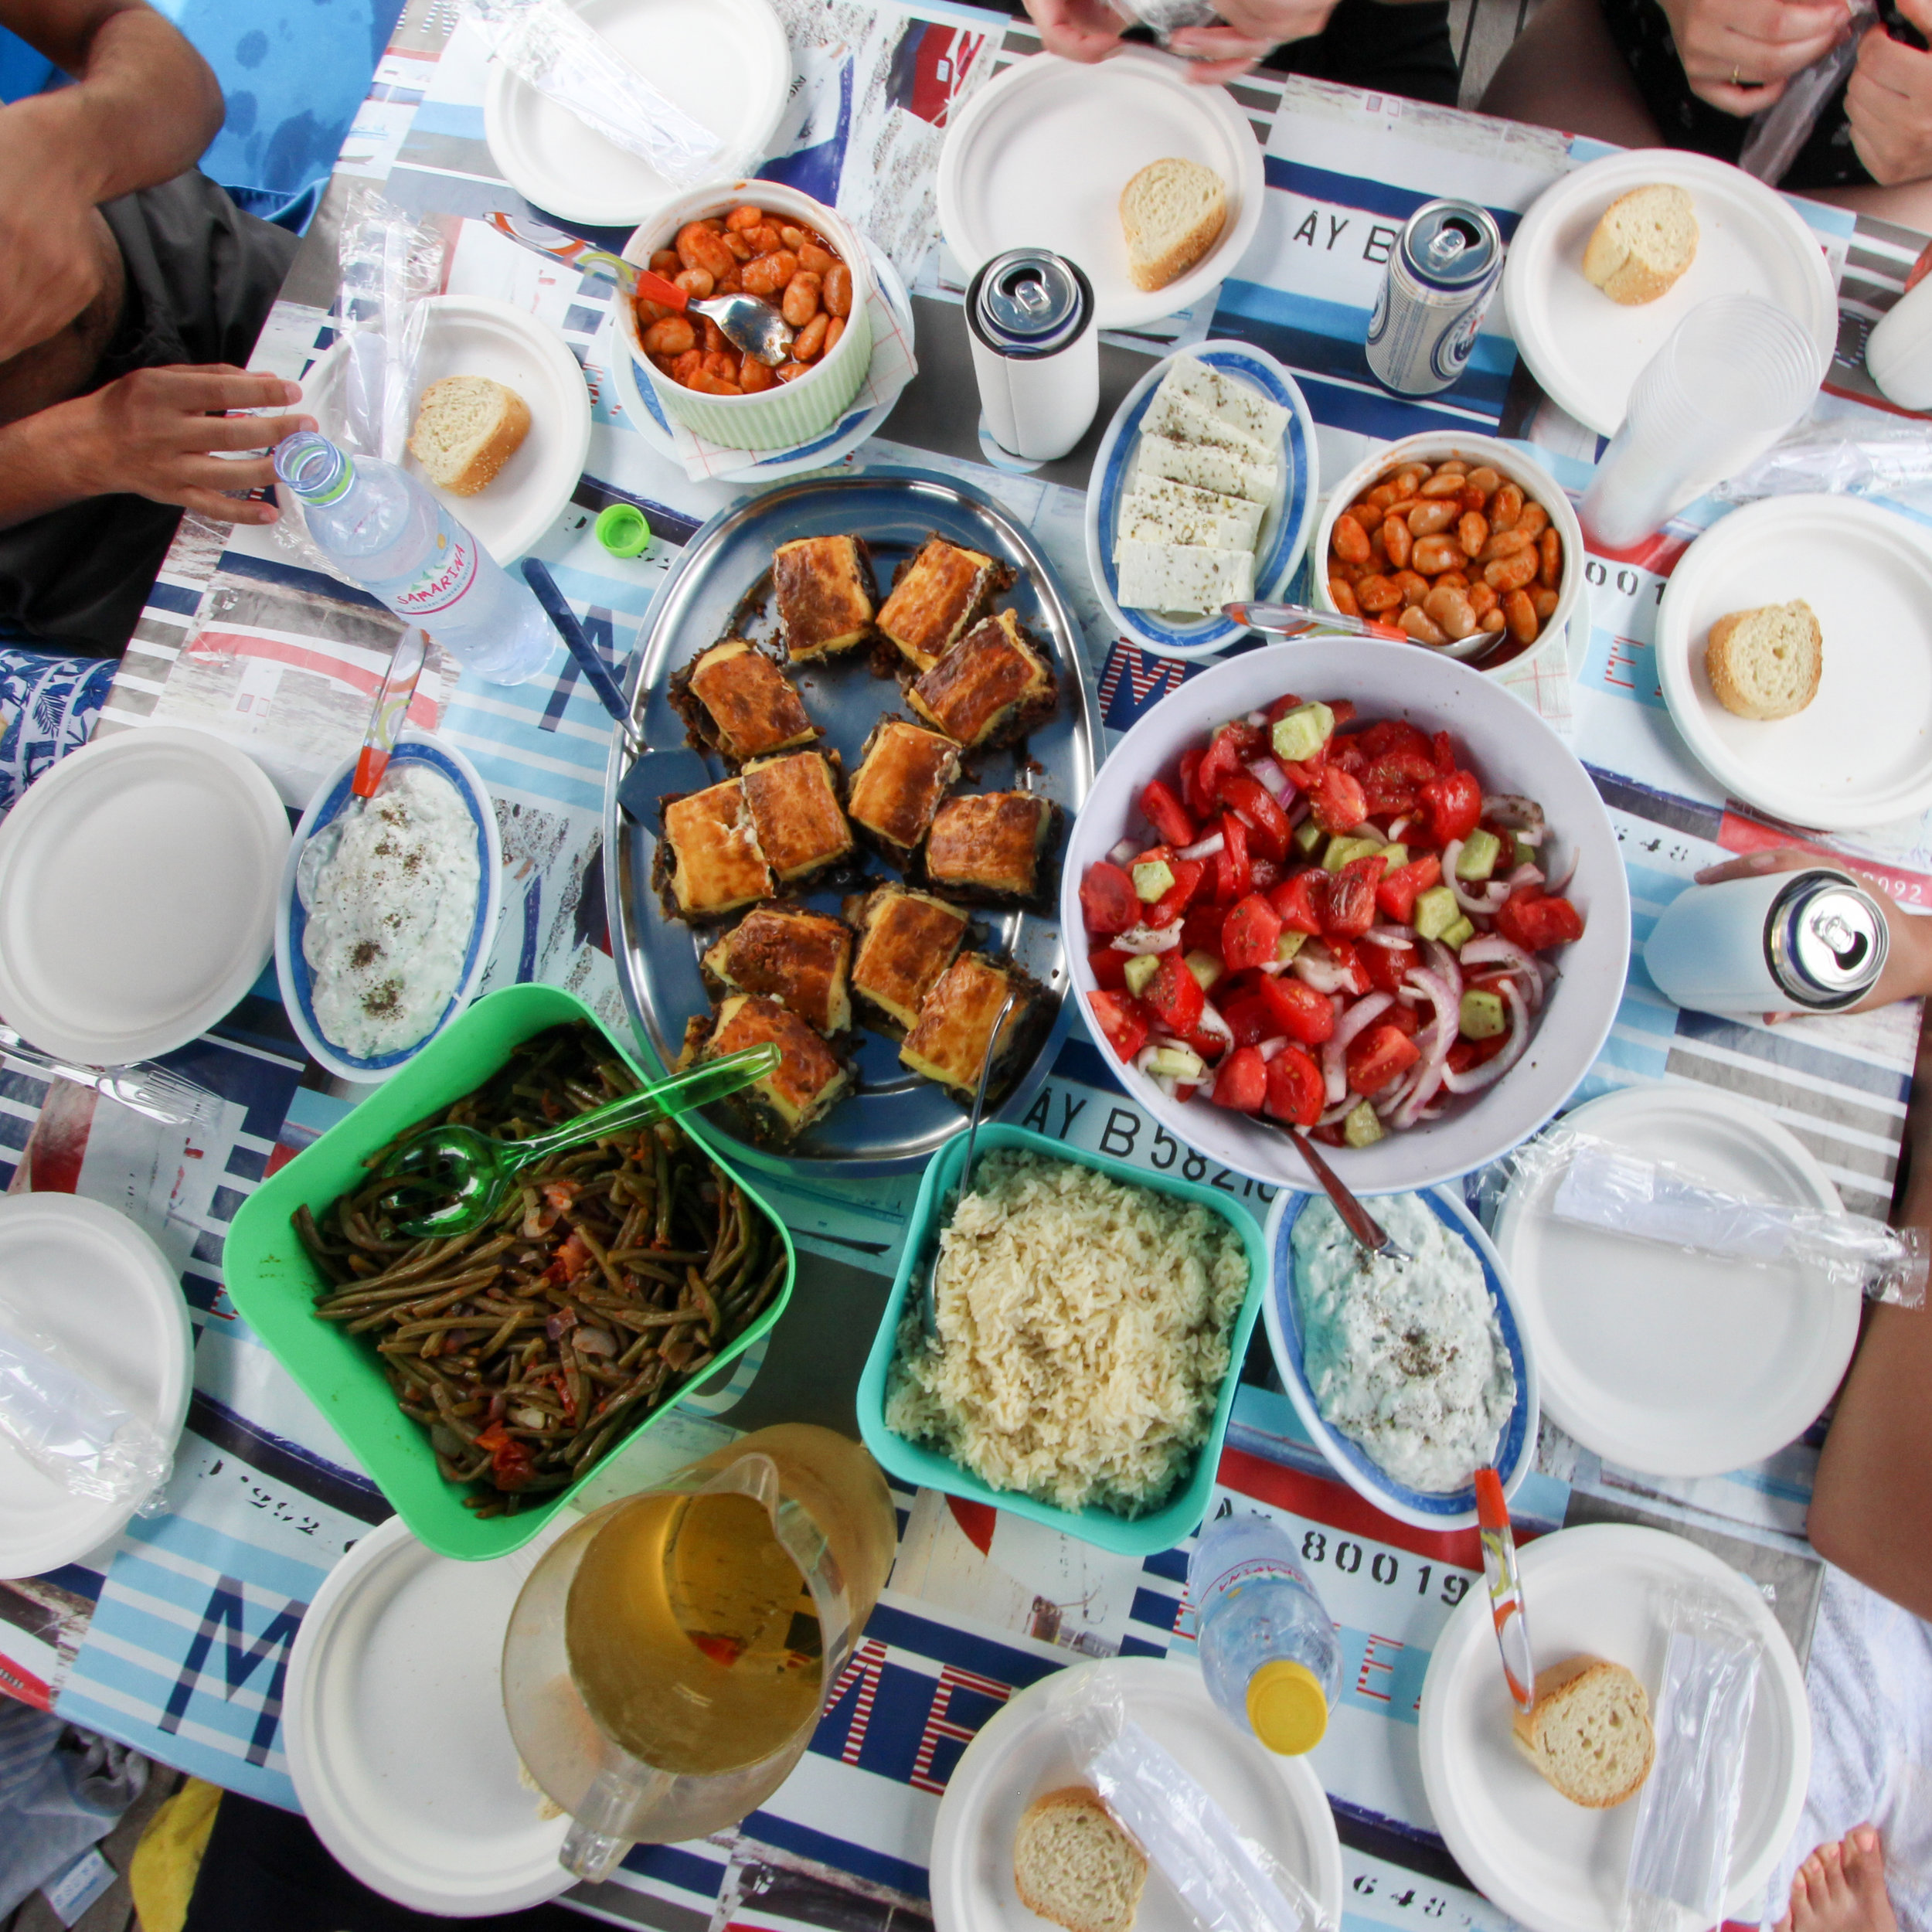 HellaTravels solo female travelers gather around delicious Greek food on a sailing excursion on a HellaTravels Greece Vacation.